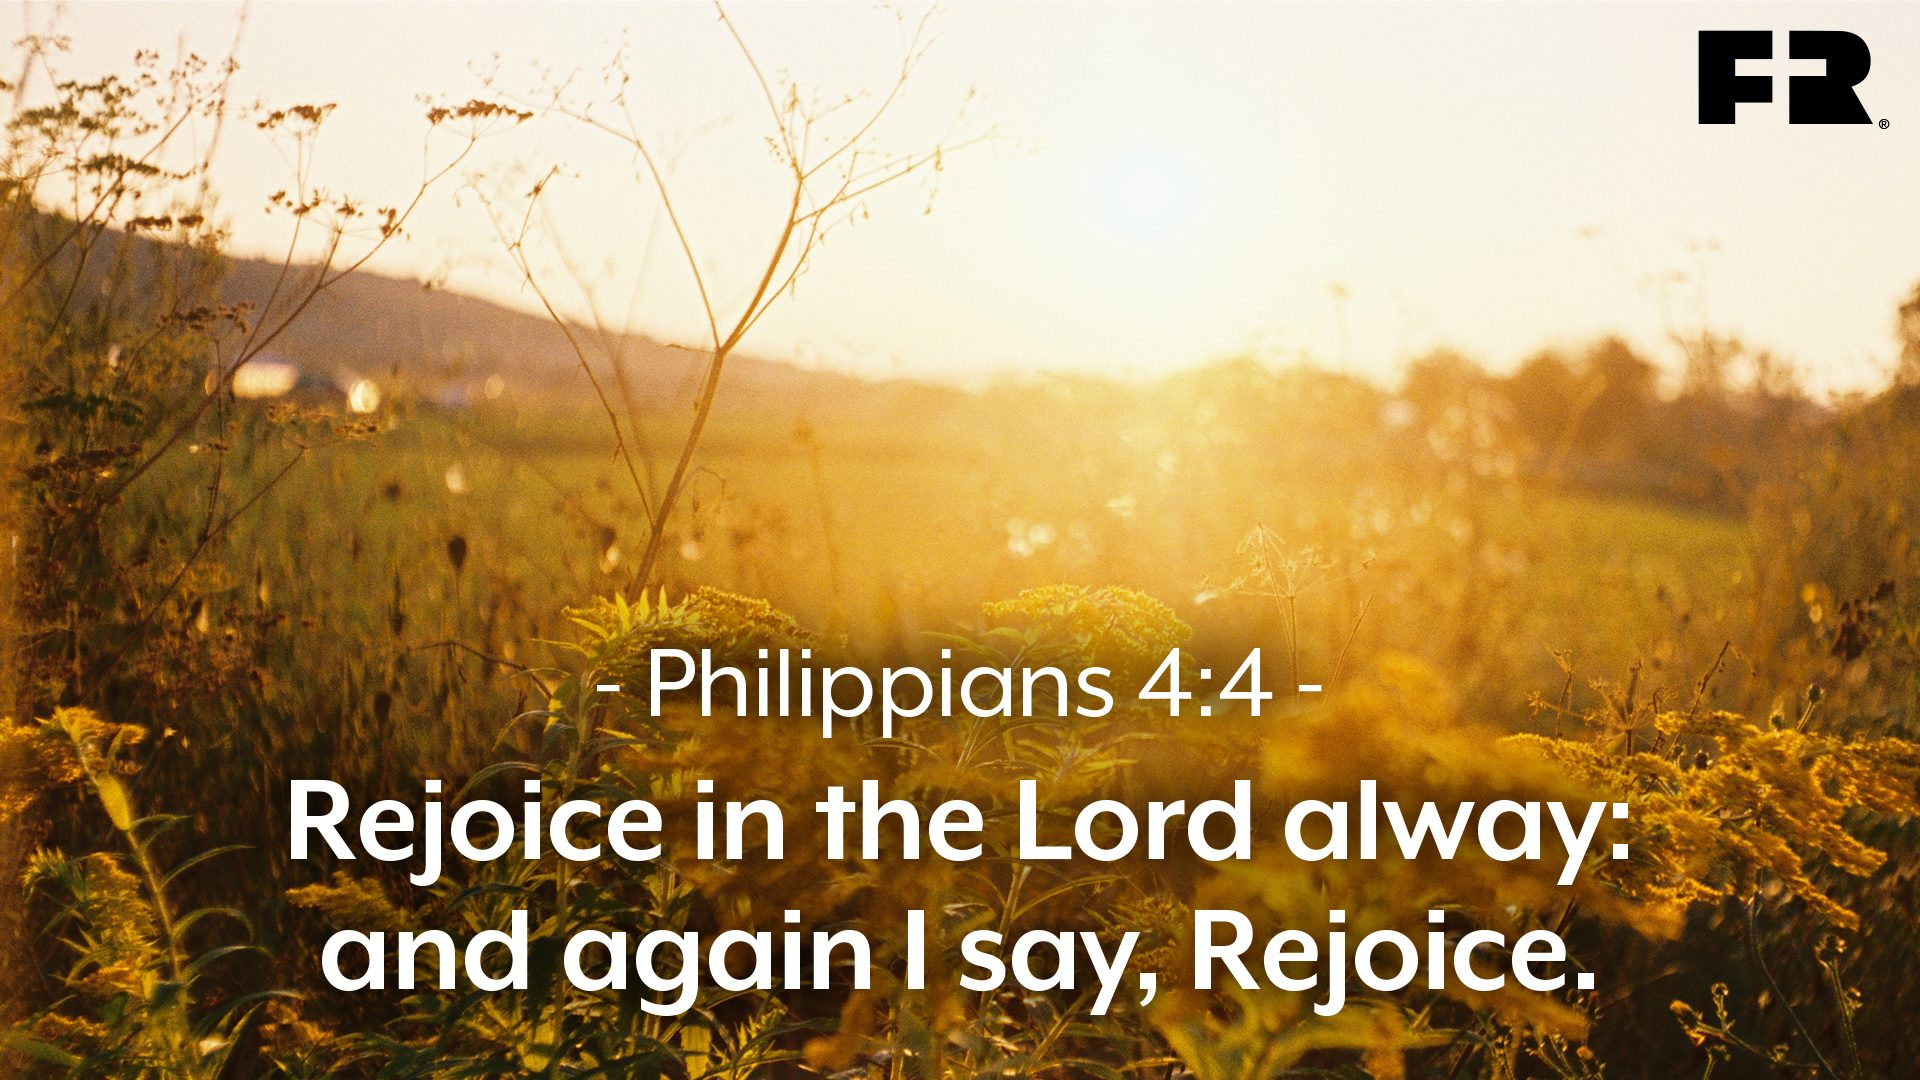 """Rejoice in the Lord alway: and again I say, Rejoice."""